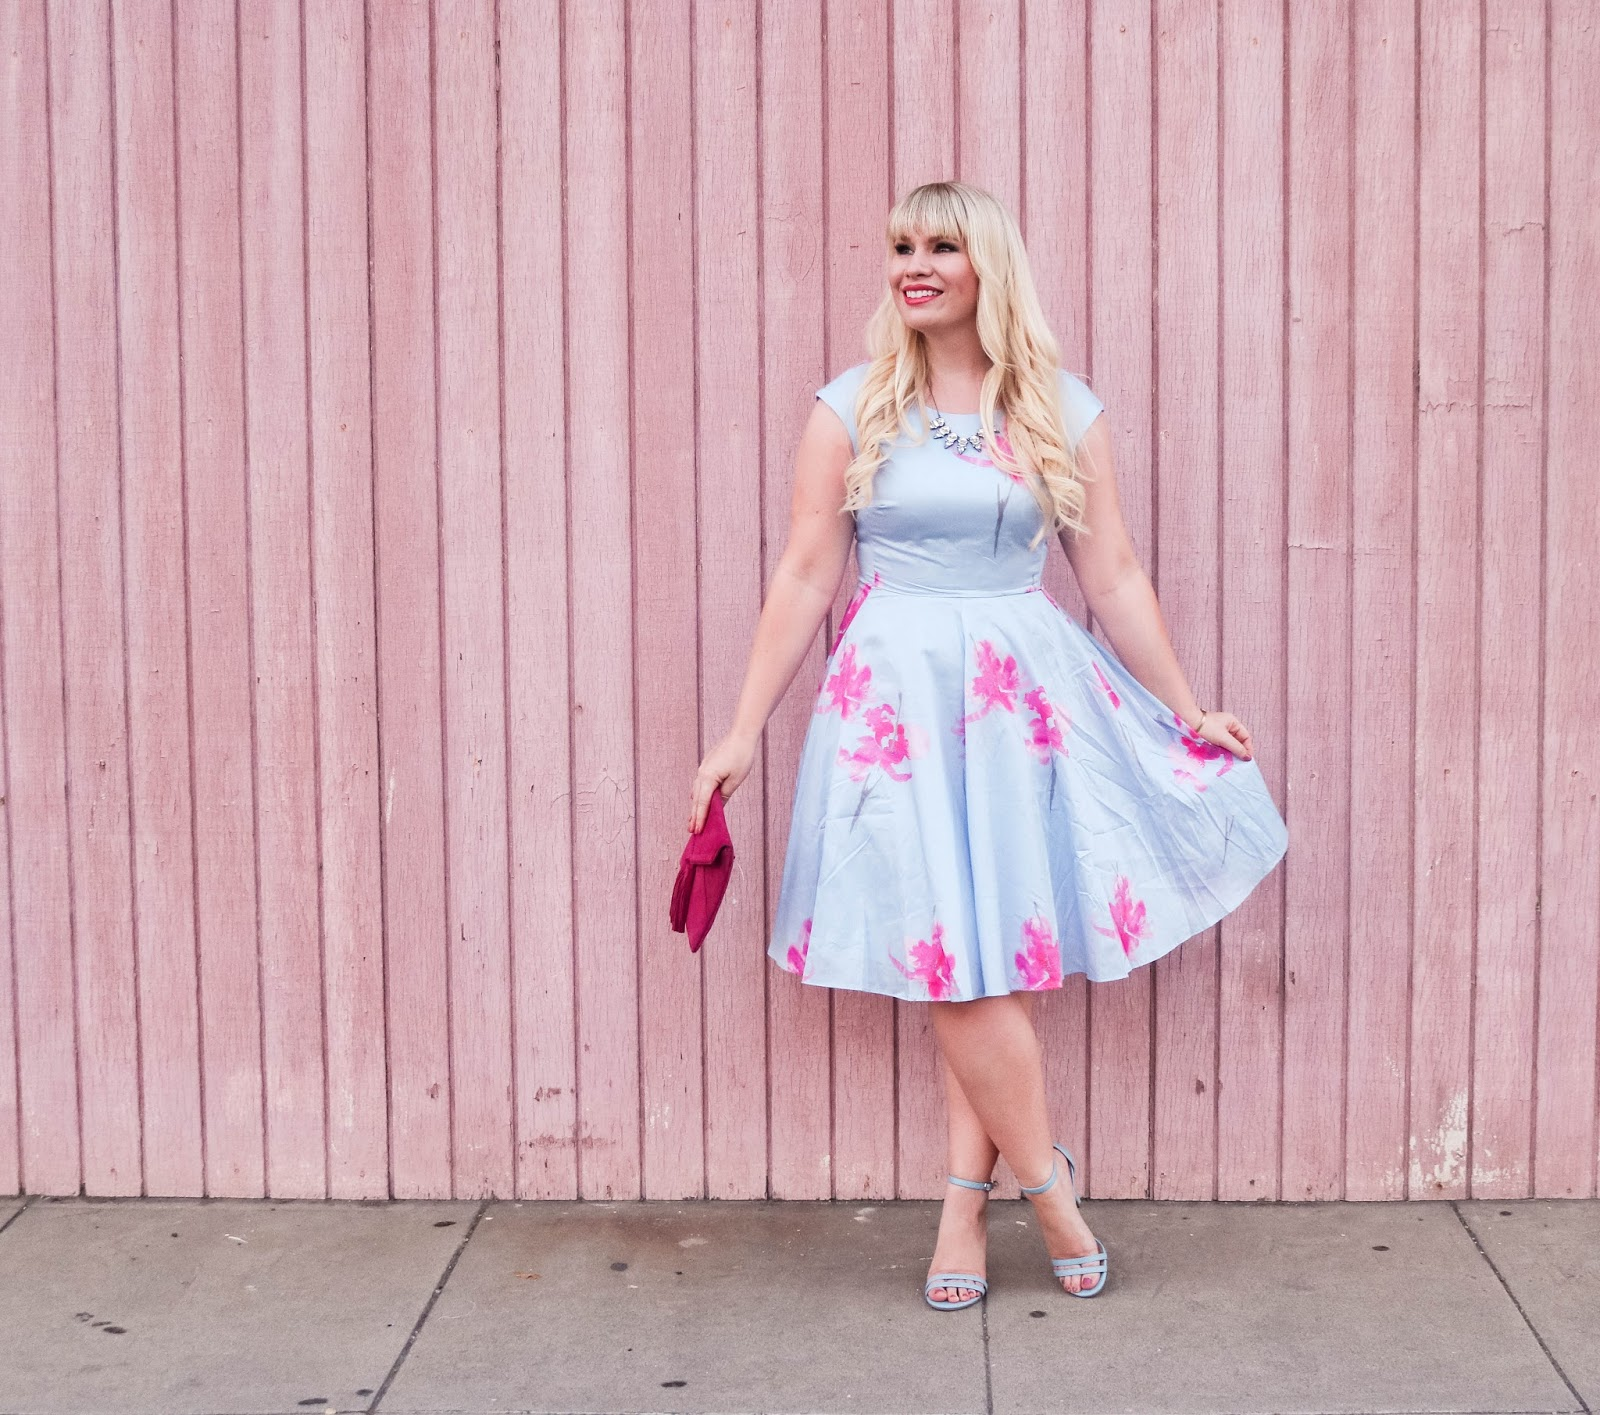 5 Reasons Why I Love Wearing Dresses